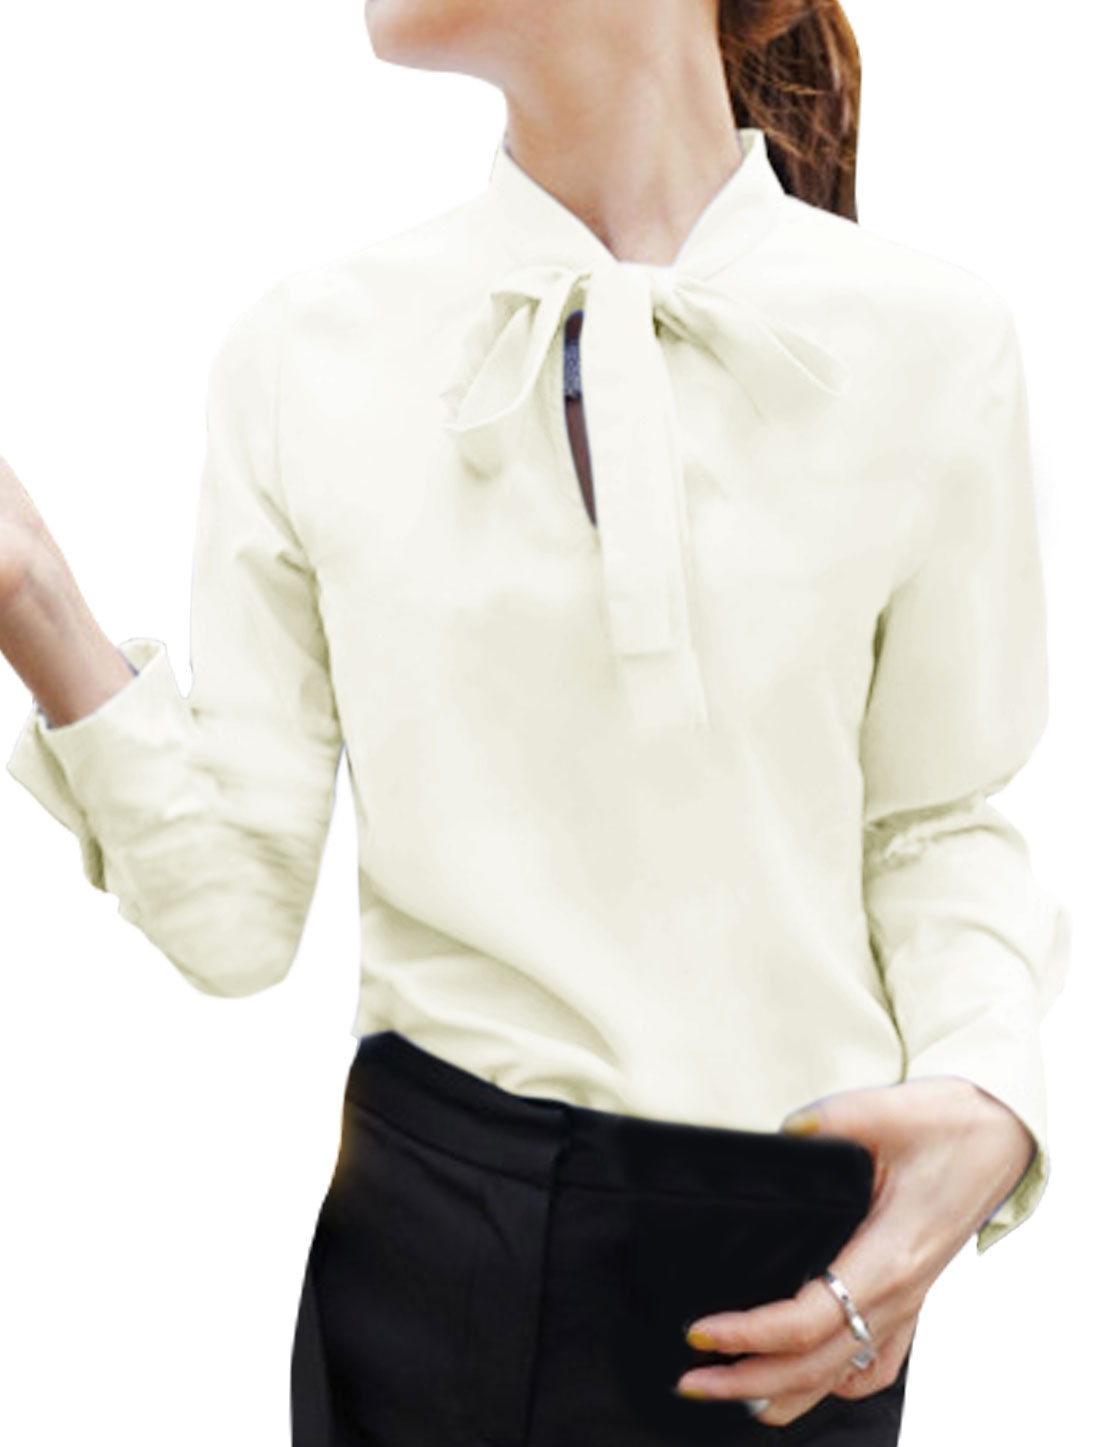 Women Tie Neck Long Sleeves Casual Blouse White S